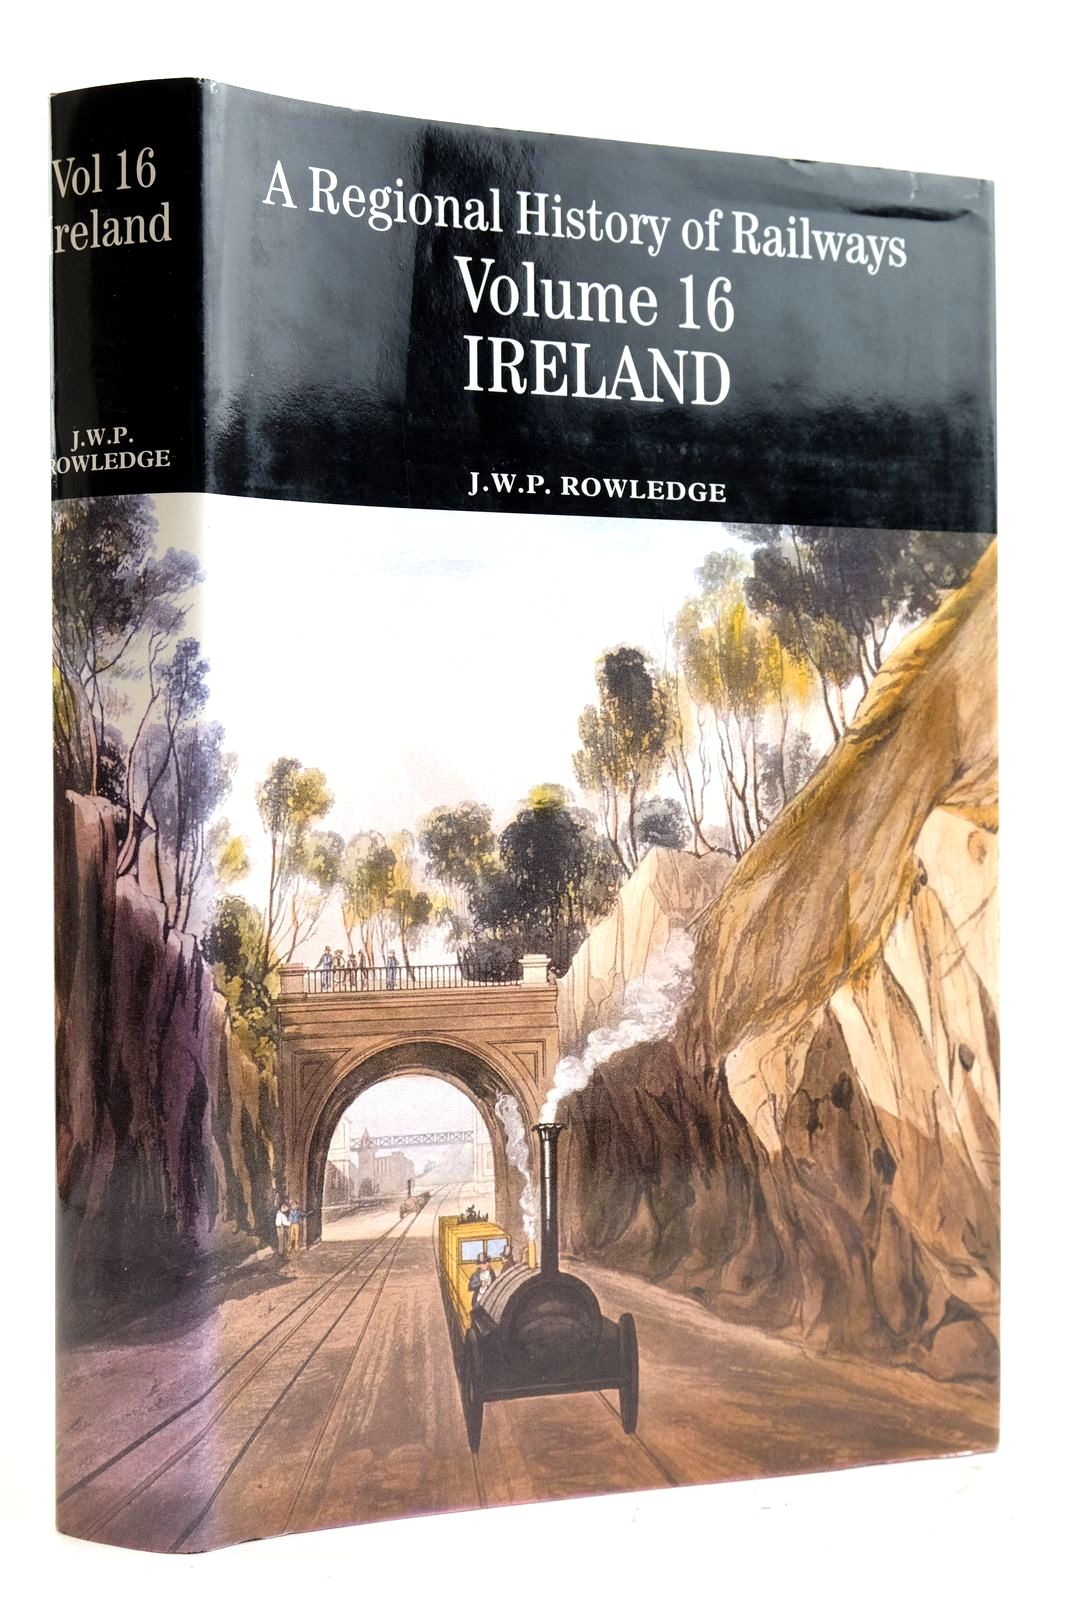 Photo of A REGIONAL HISTORY OF RAILWAYS VOLUME 16 IRELAND written by Rowledge, J.W.P. published by Atlantic Transport Publishers (STOCK CODE: 2133047)  for sale by Stella & Rose's Books